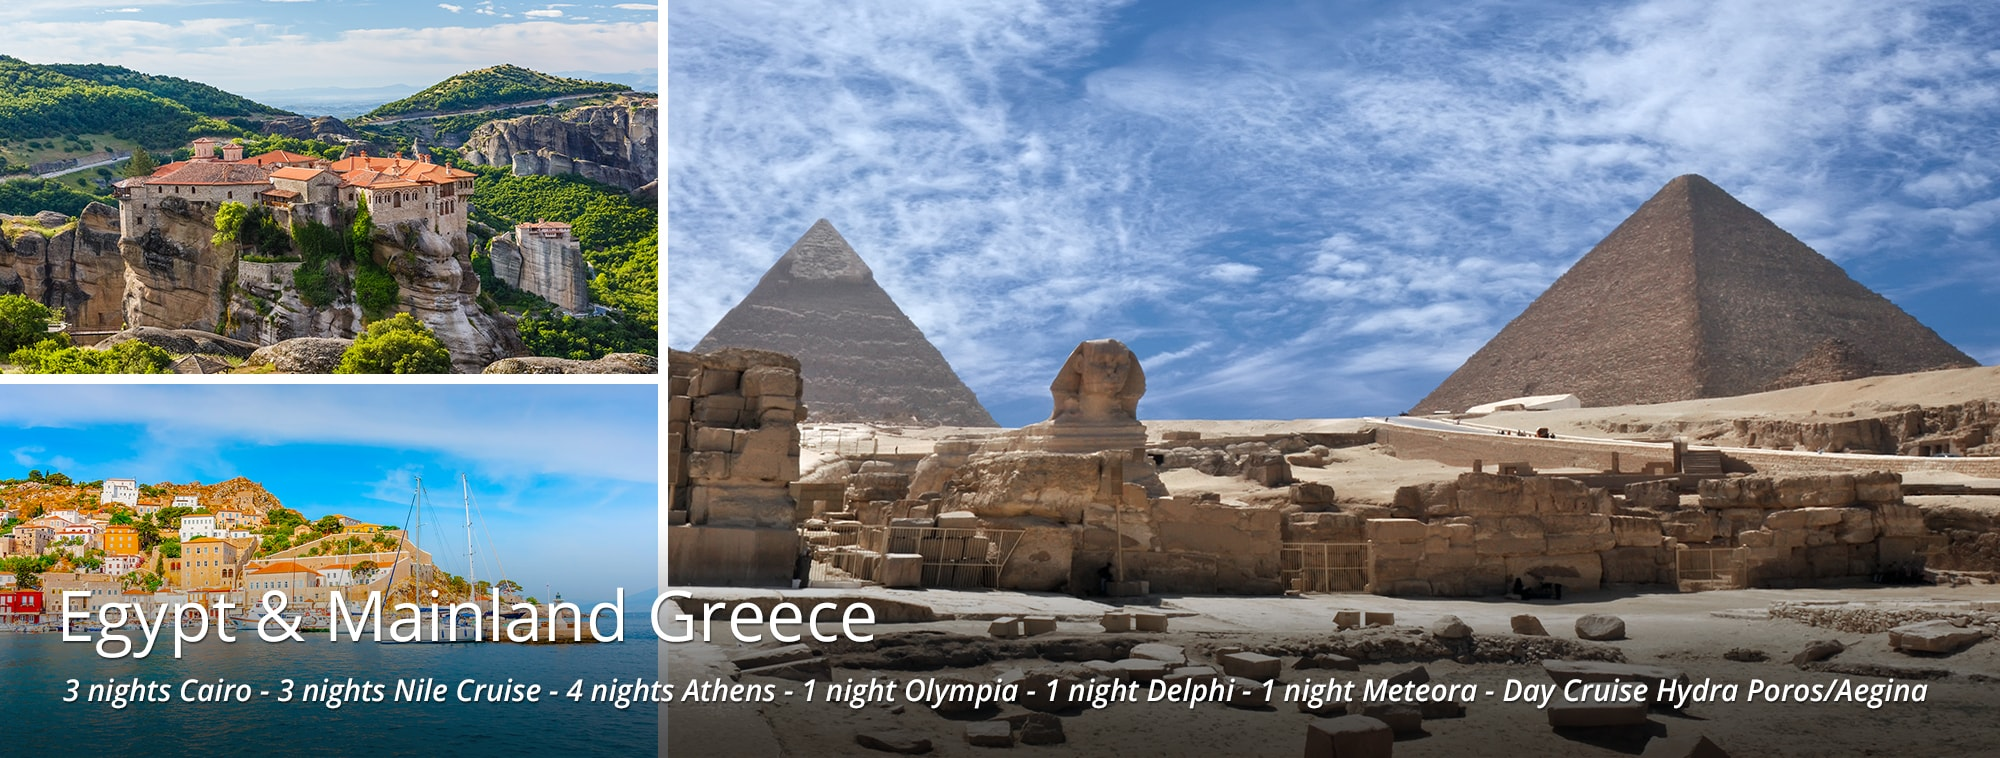 Egypt & Mainland Greece Tour